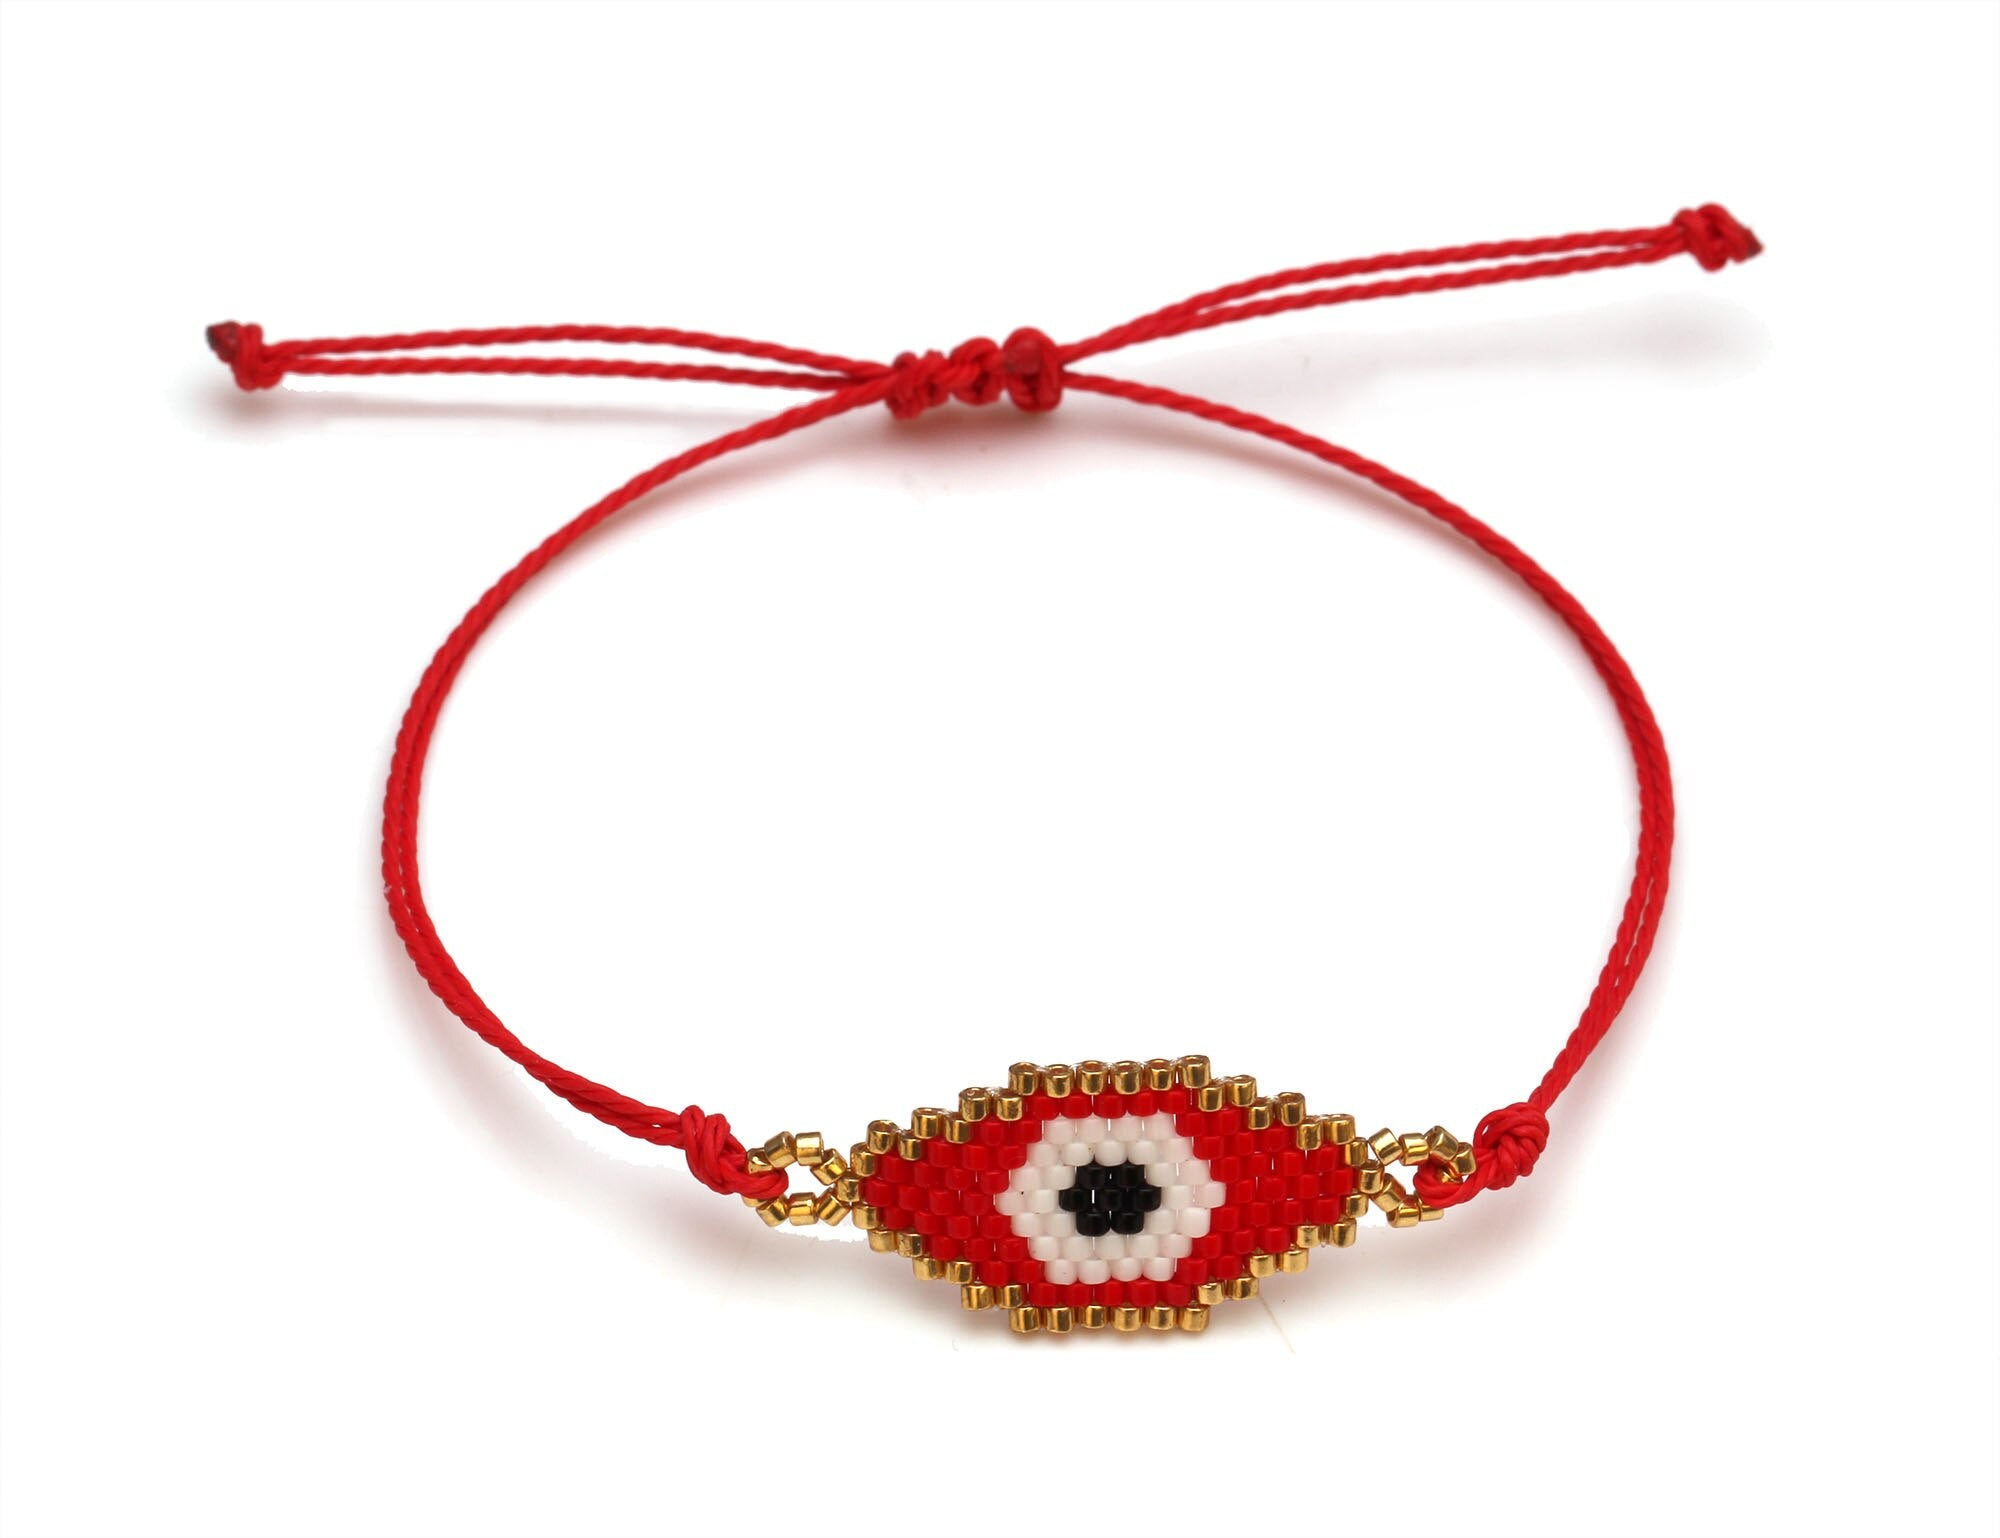 Japanese Glass Eye bracelet - Eye see no evil